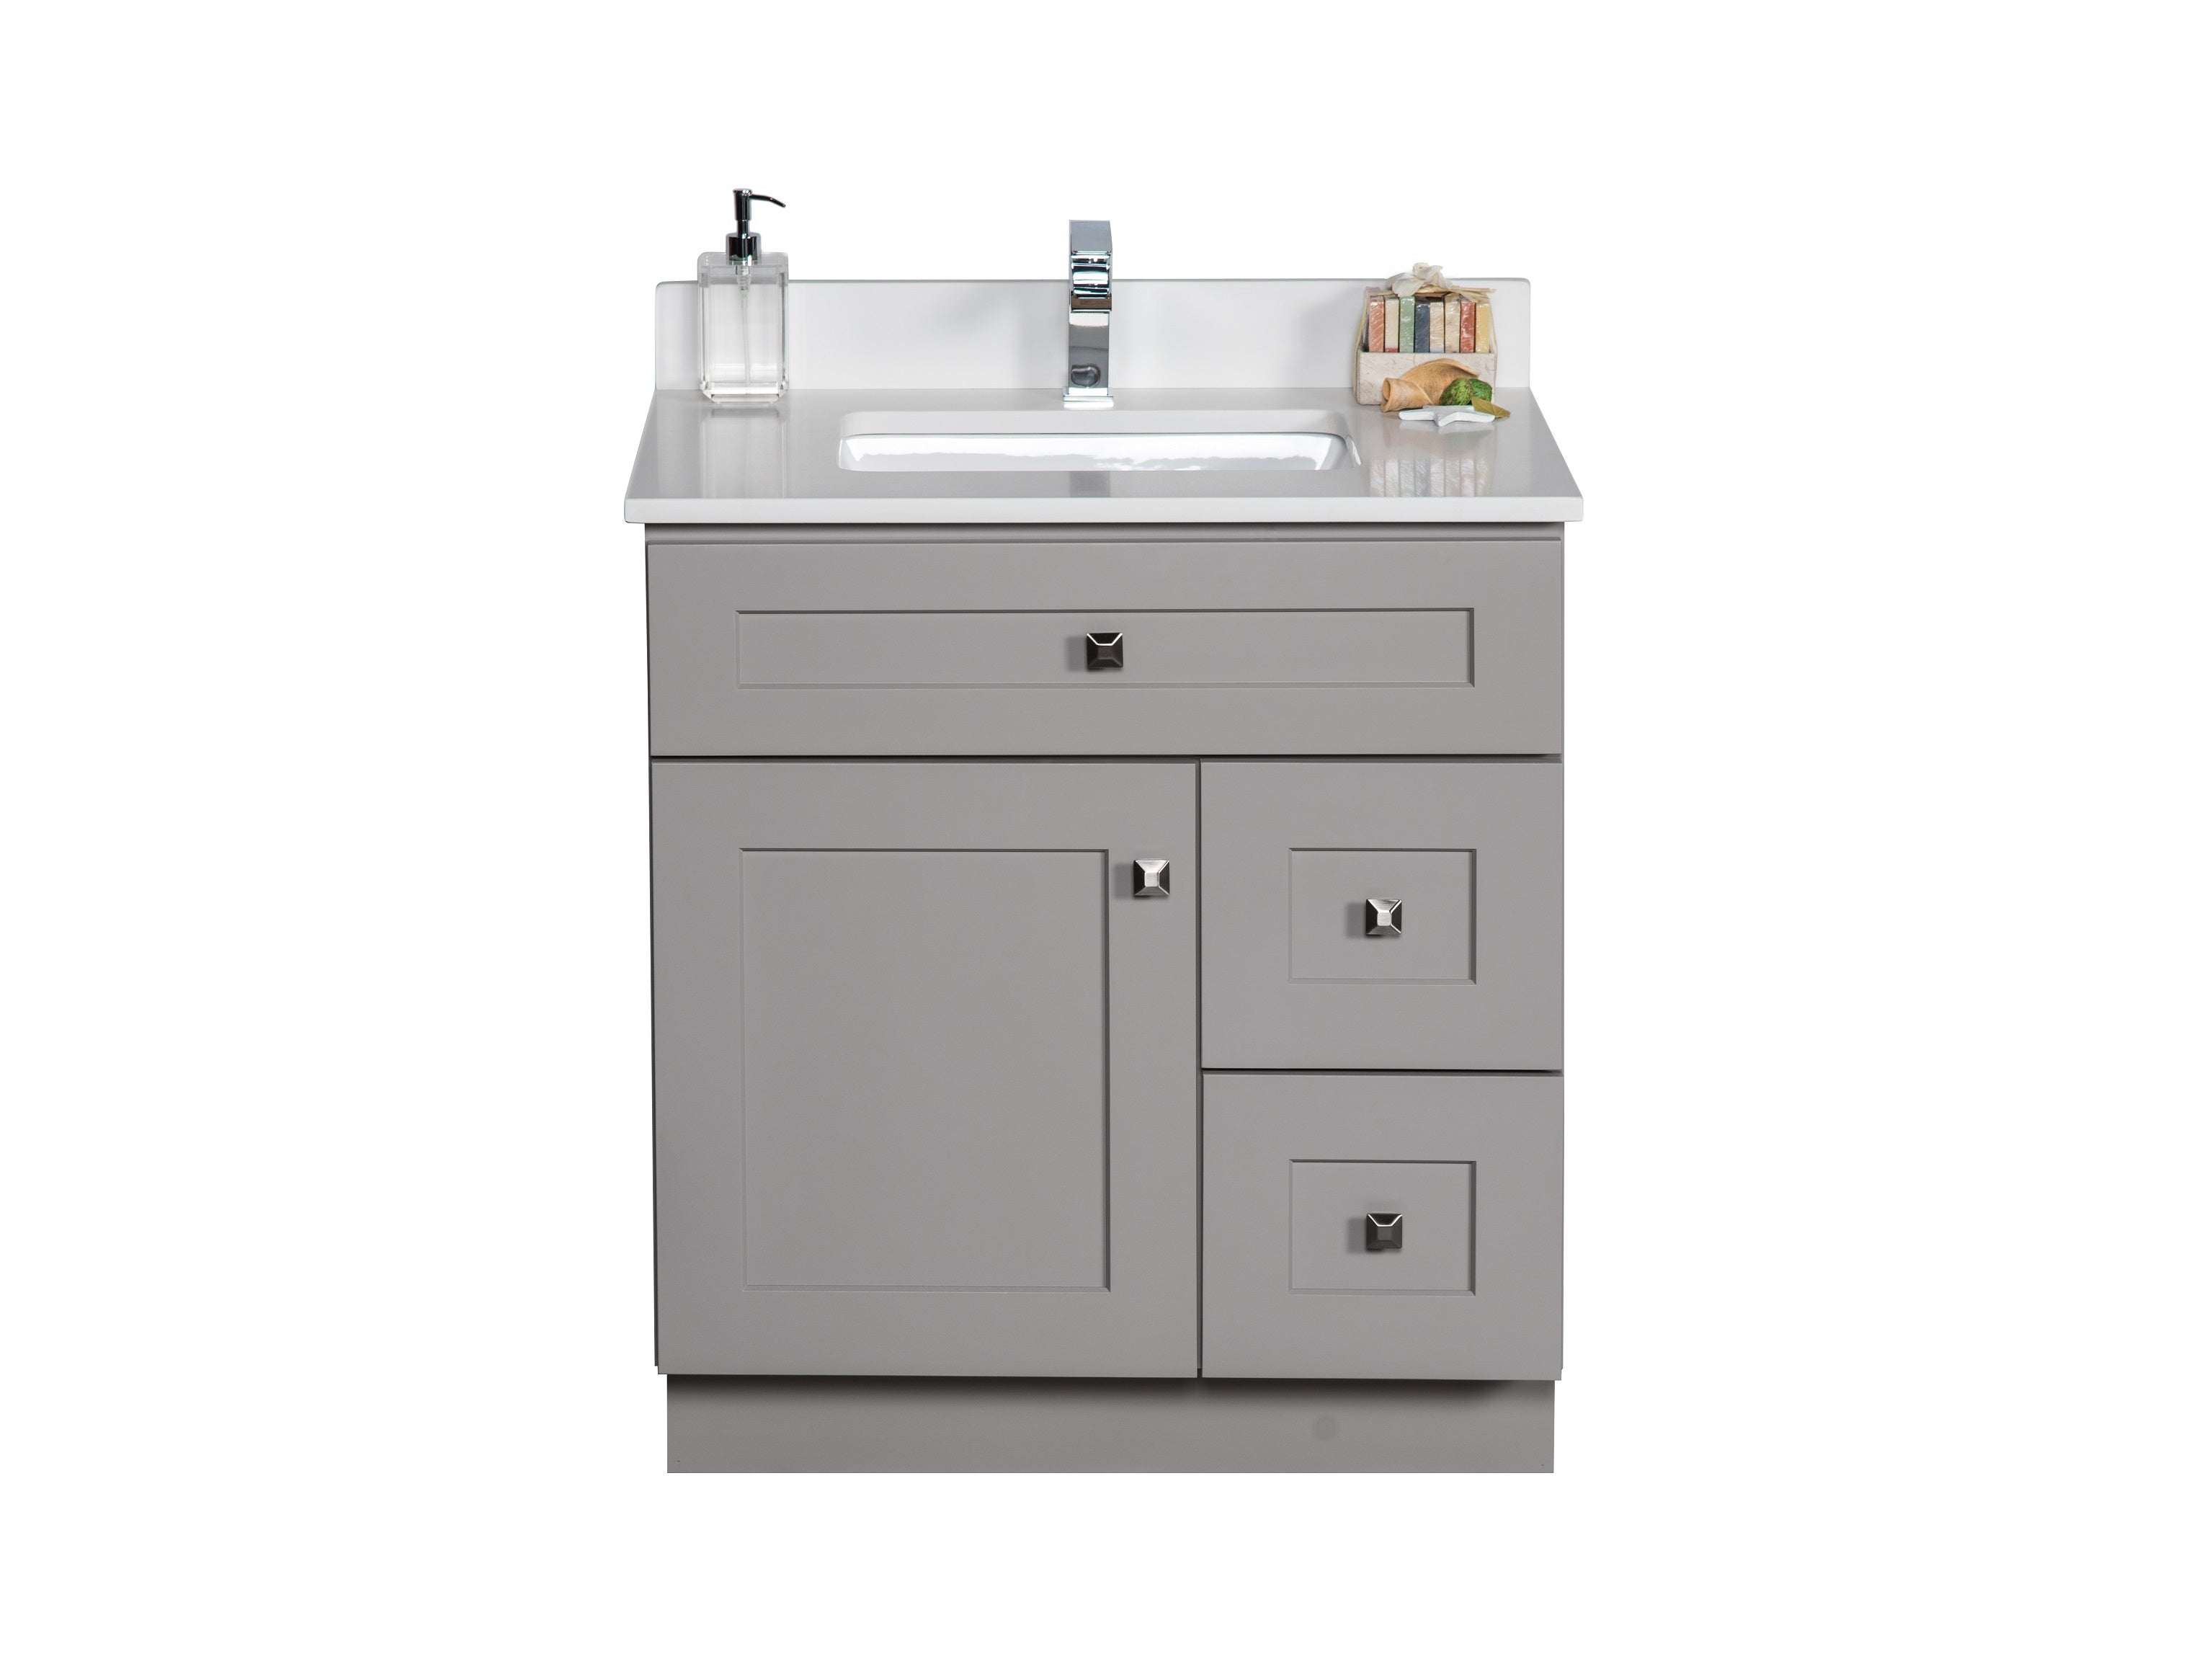 30 ̎ Maple Wood Bathroom Vanity in Grey   Combo – Broadway Vanities